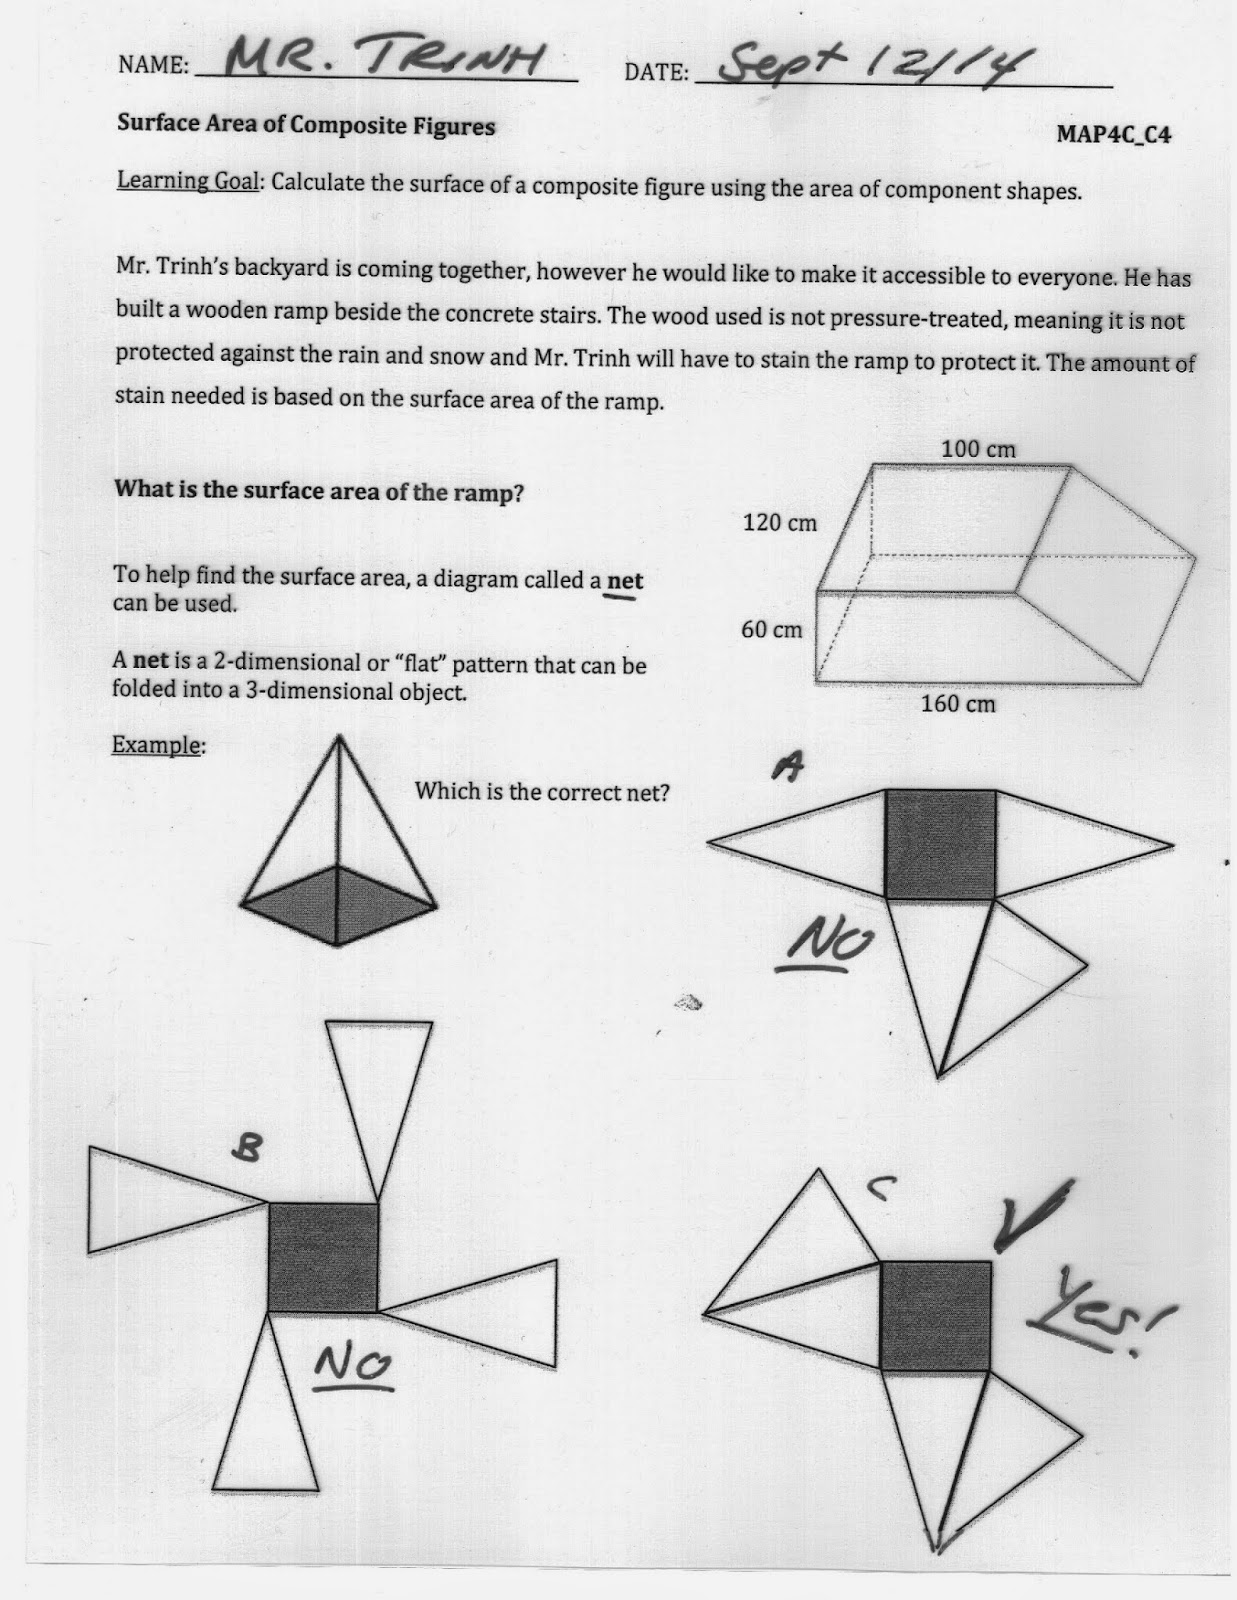 worksheet Surface Area Of Composite Figures Worksheet grade 12 college math surface area of composite figures hwk worksheet 5 6 and 12